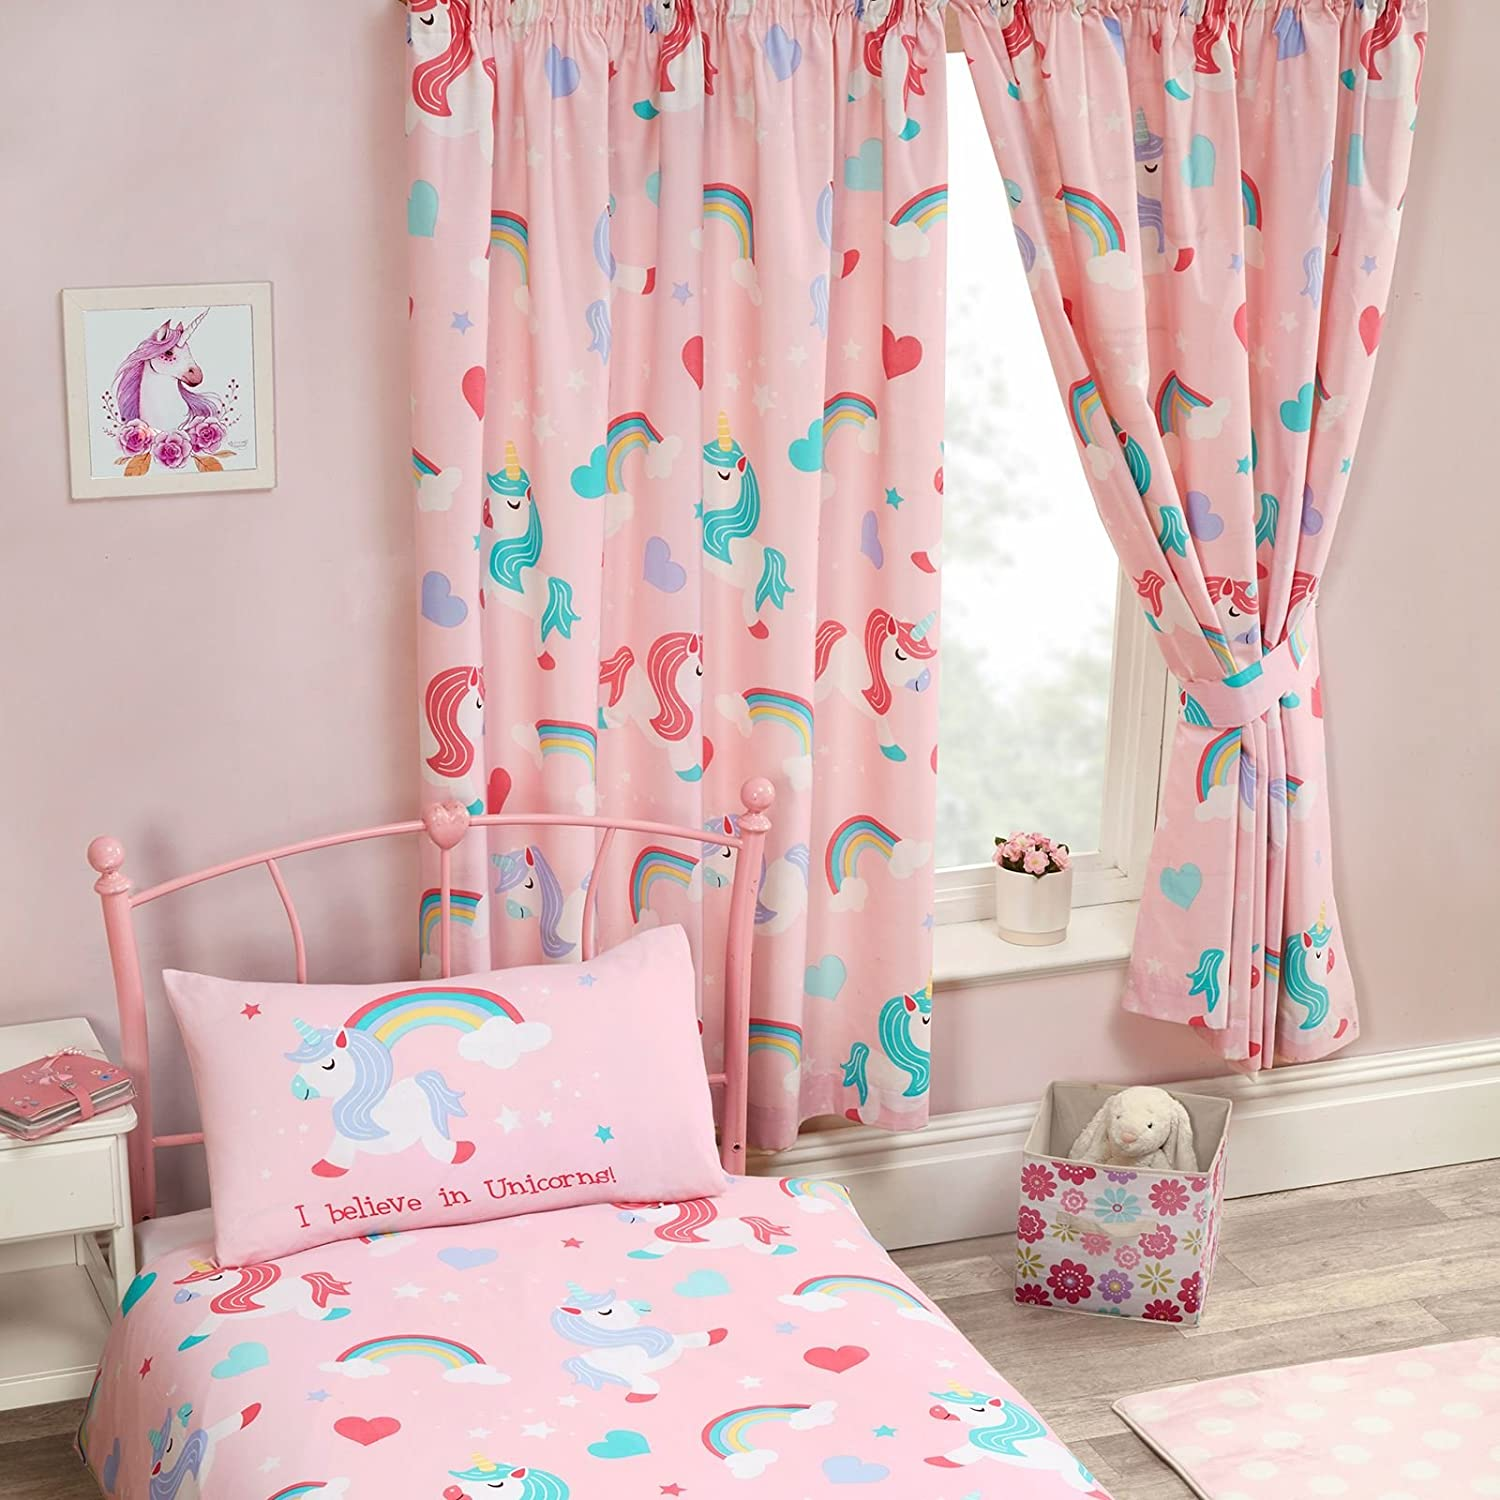 Price Right Home I Believe In Unicorns Lined Curtains 66 x 72 Drop (168cm x 183cm) Rapport